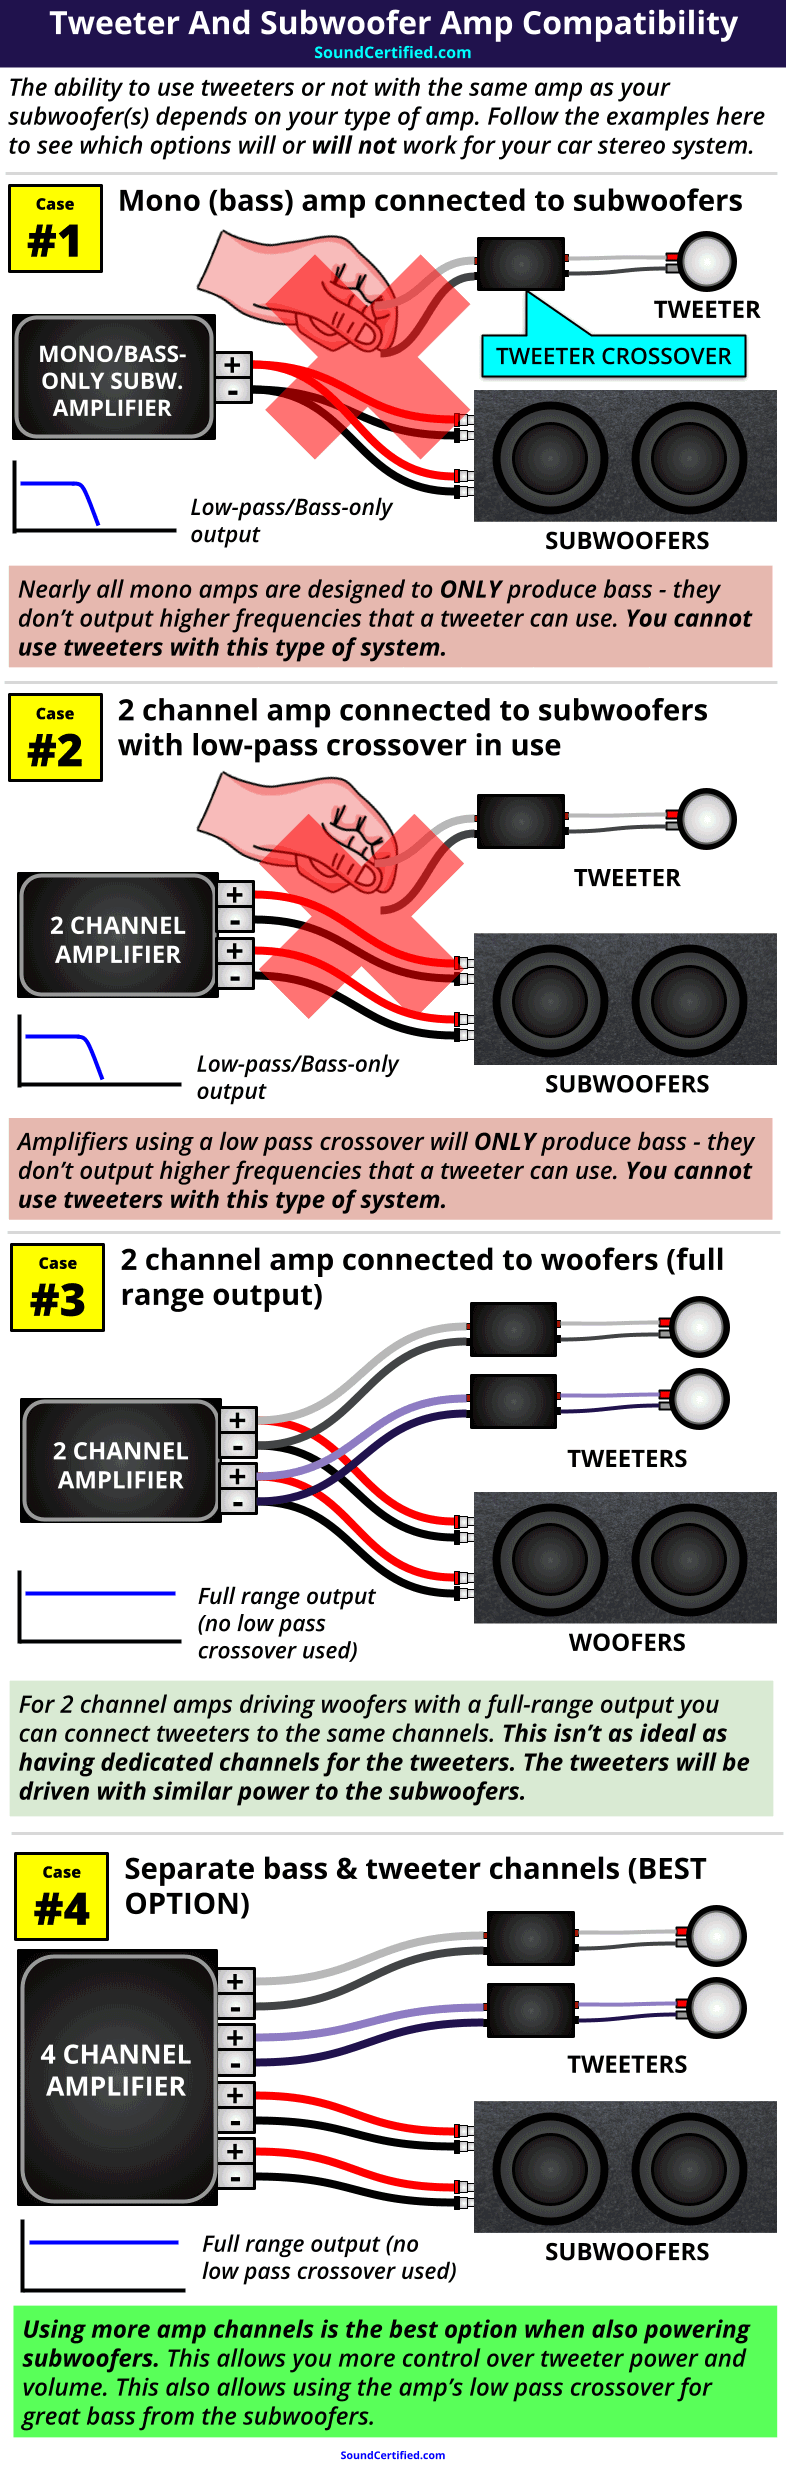 tweeter and subwoofer amp wiring compatibility diagram